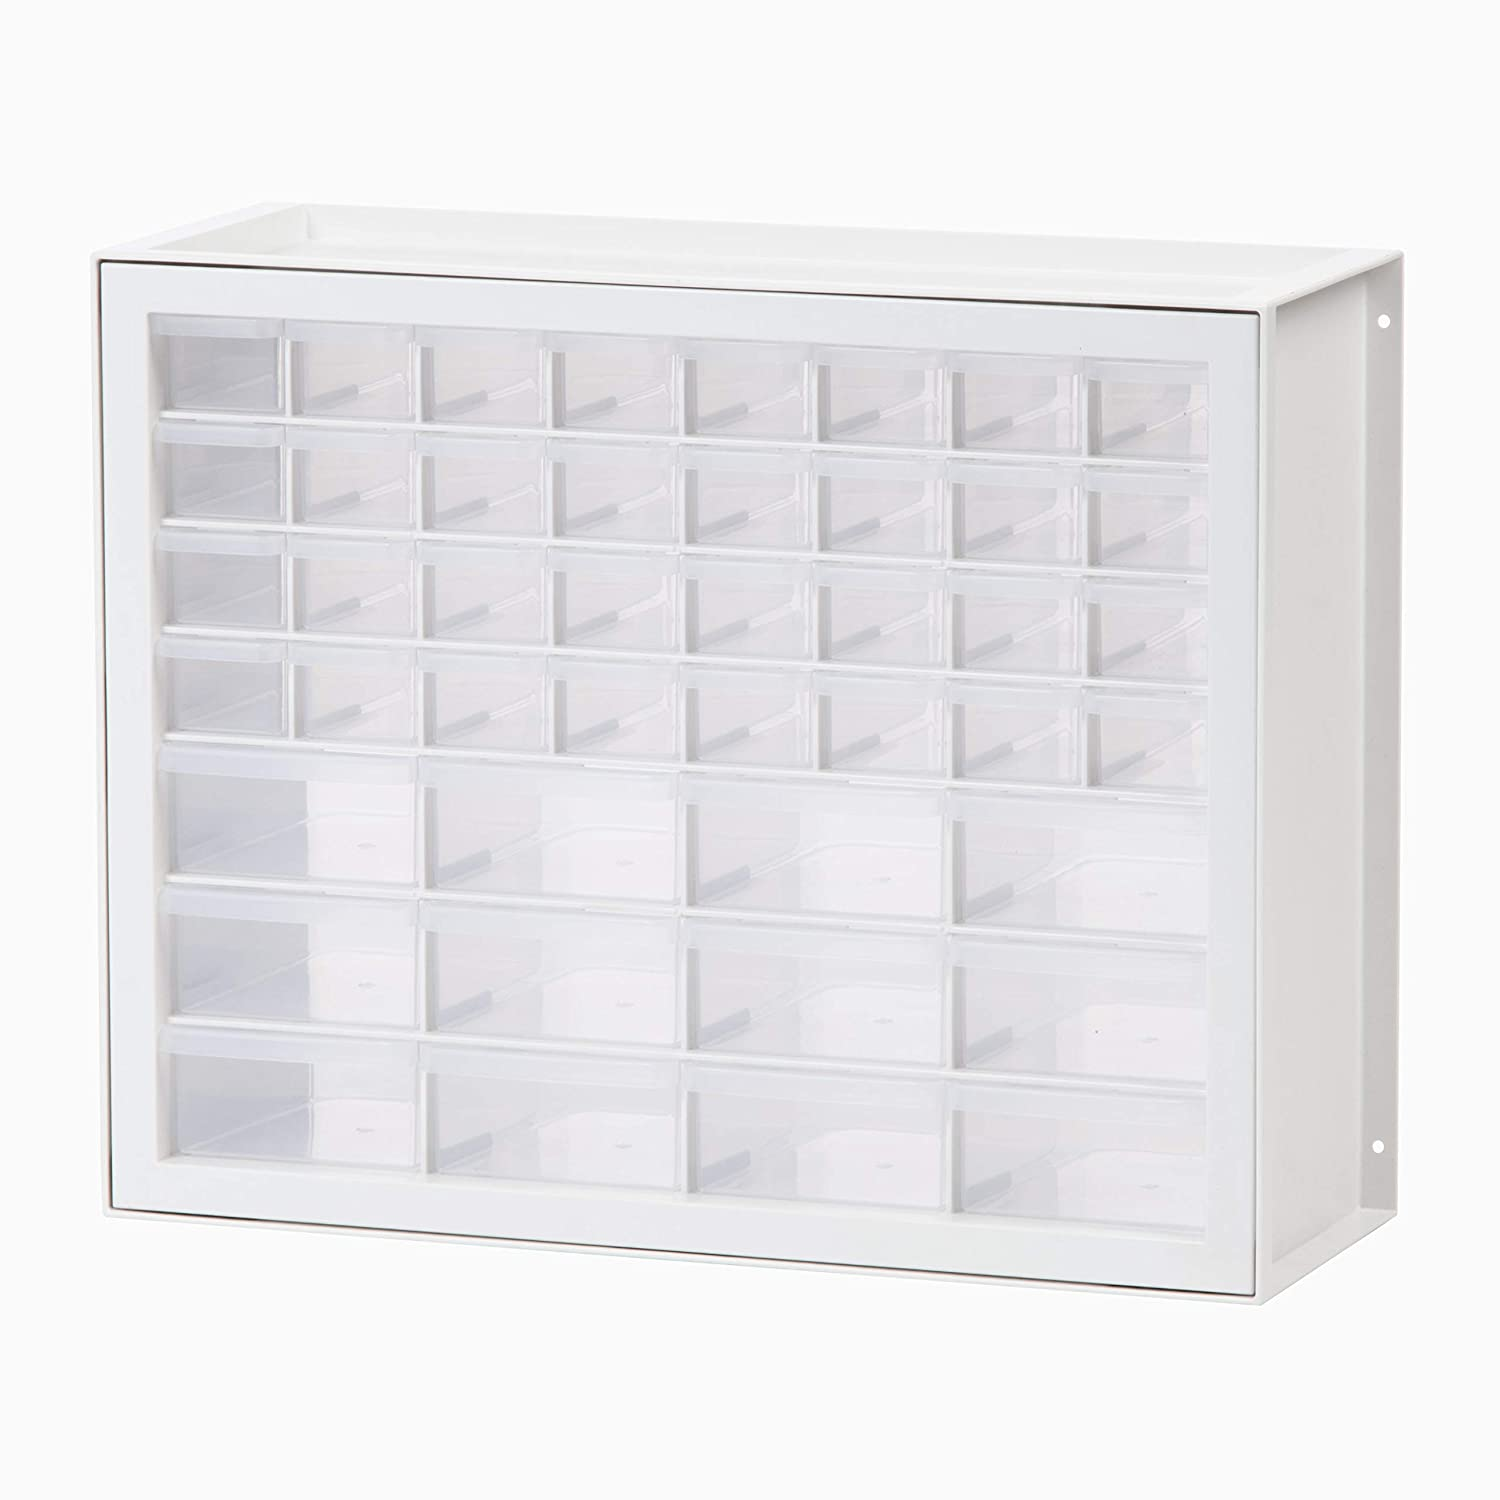 IRIS USA, Inc. DPC-44 44 Drawer Sewing and Craft Parts Cabinet White